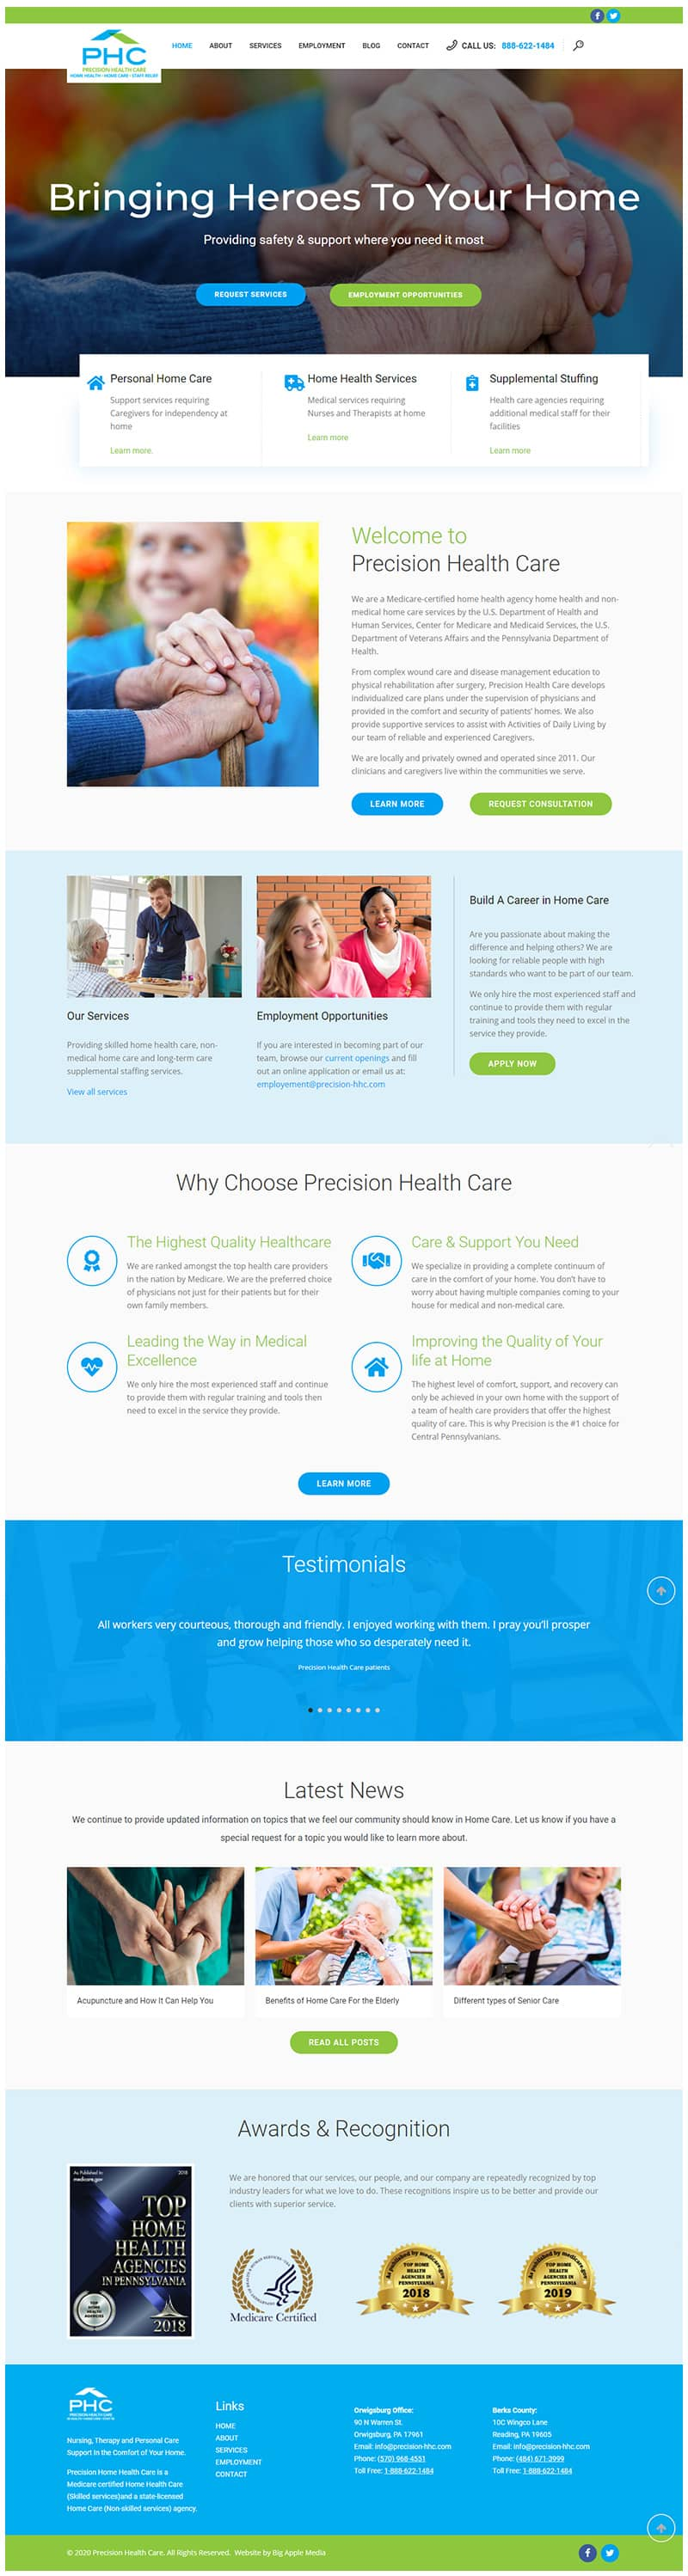 health and wellness web designs ervices